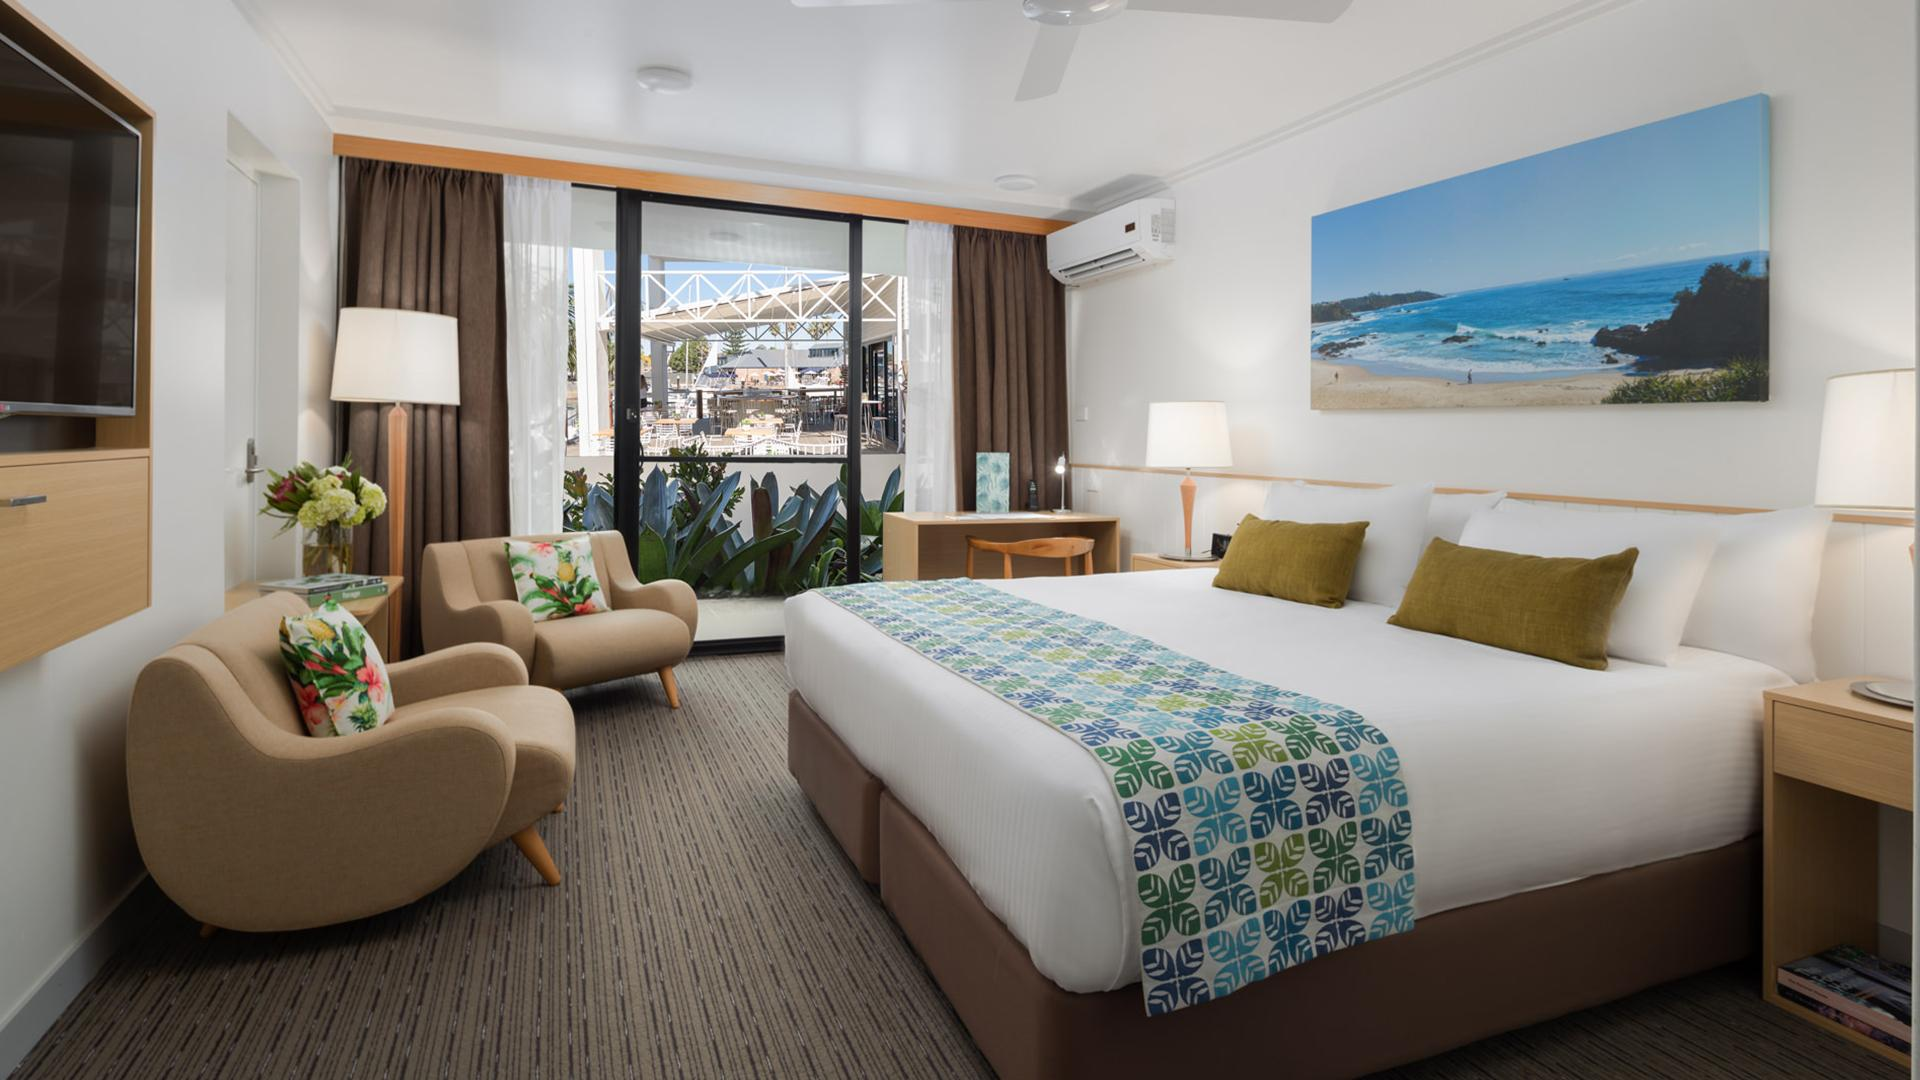 Superior Standard King Room image 1 at Sails Port Macquarie by Rydges by Port Macquarie-Hastings Council, New South Wales, Australia